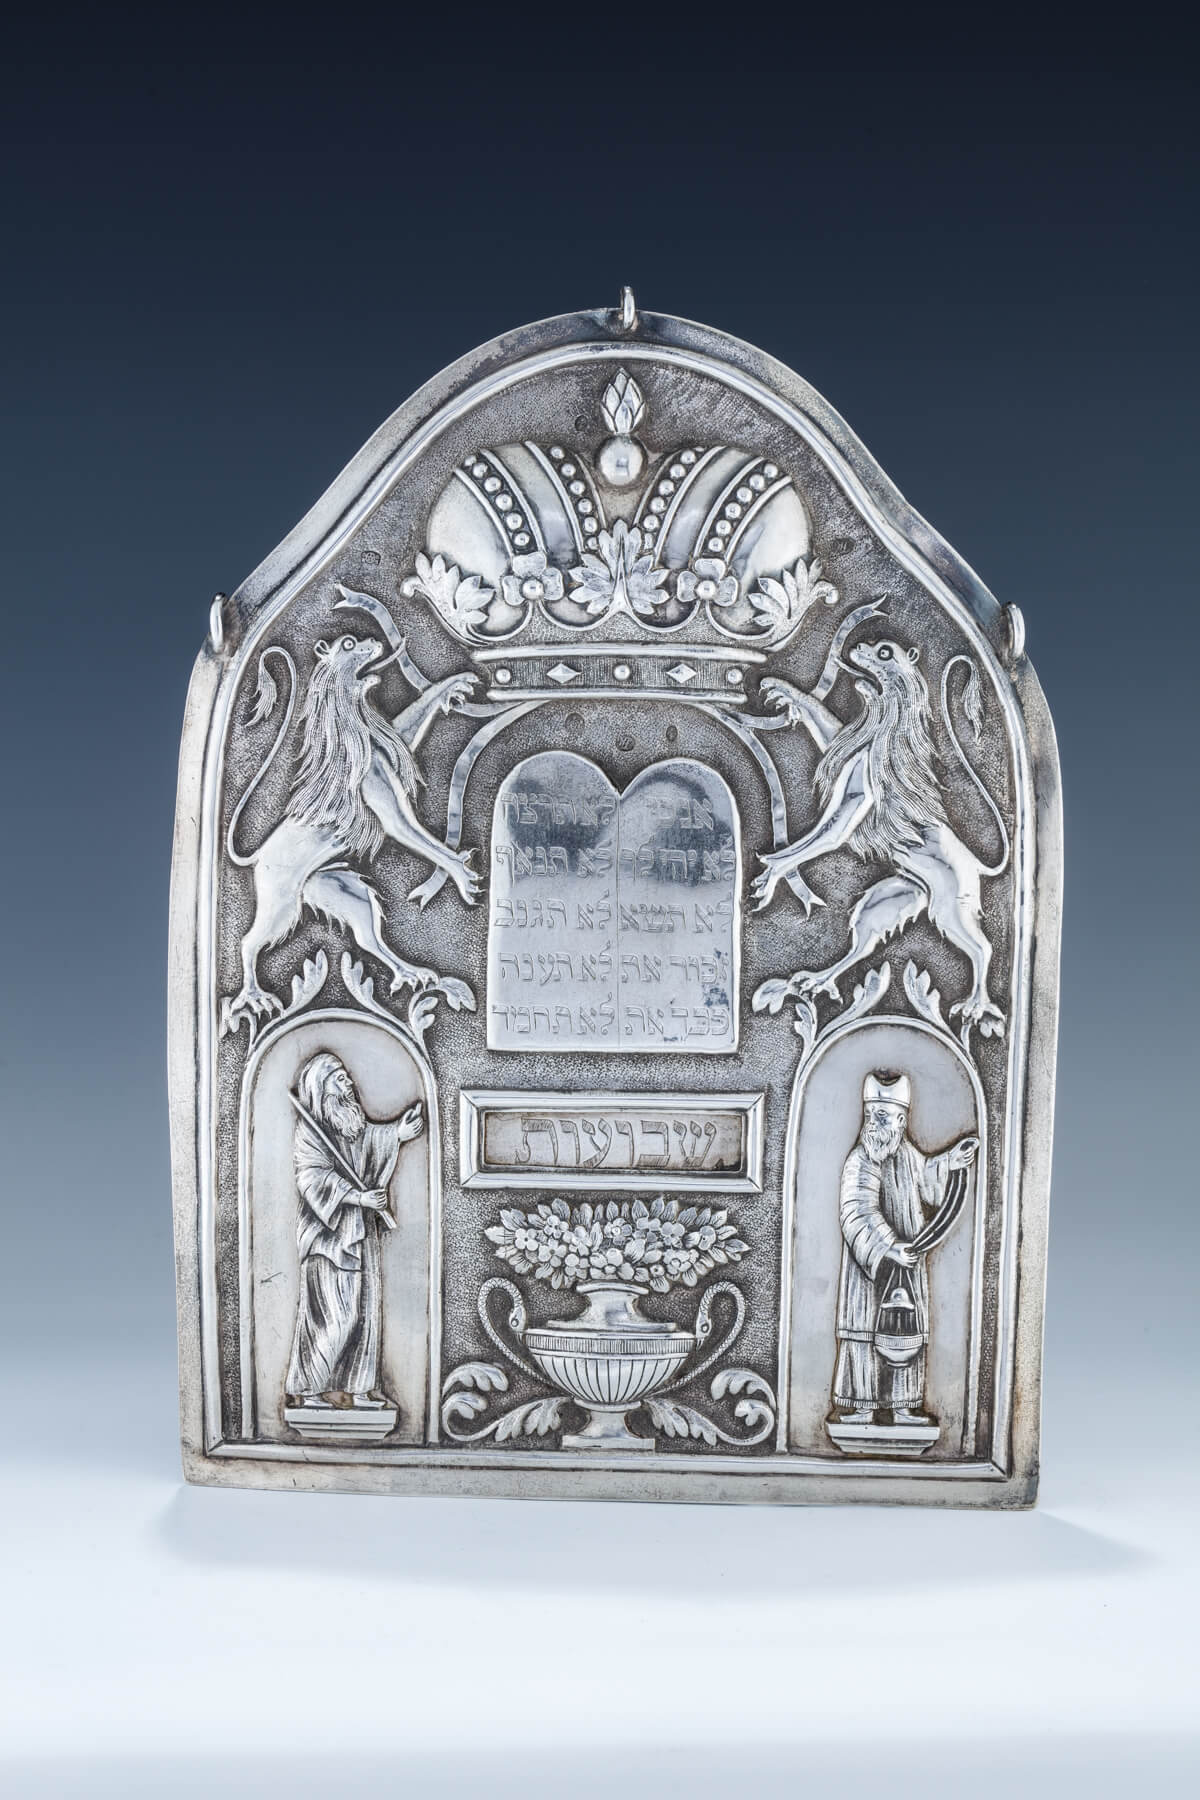 77. A Rare And Important Silver Torah Shield